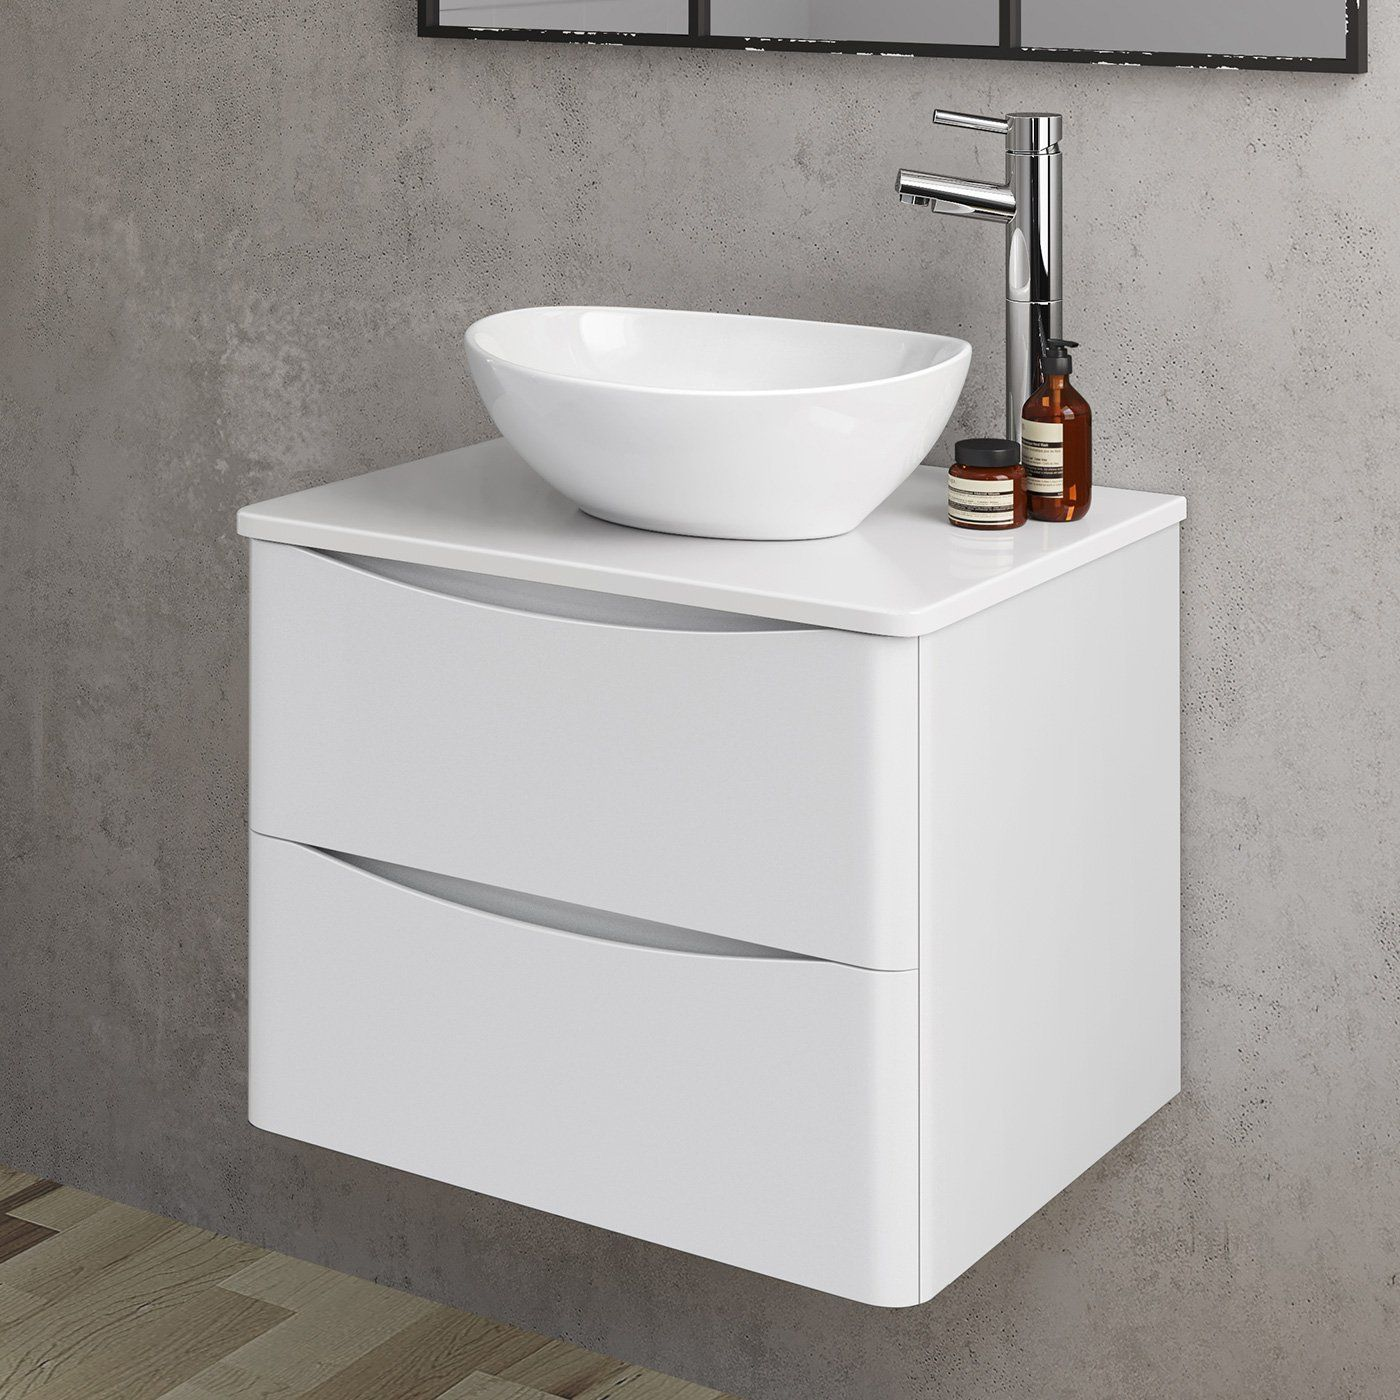 600mm bathroom furniture countertop vanity unit camila on replacement countertops for bathroom vanity id=19280